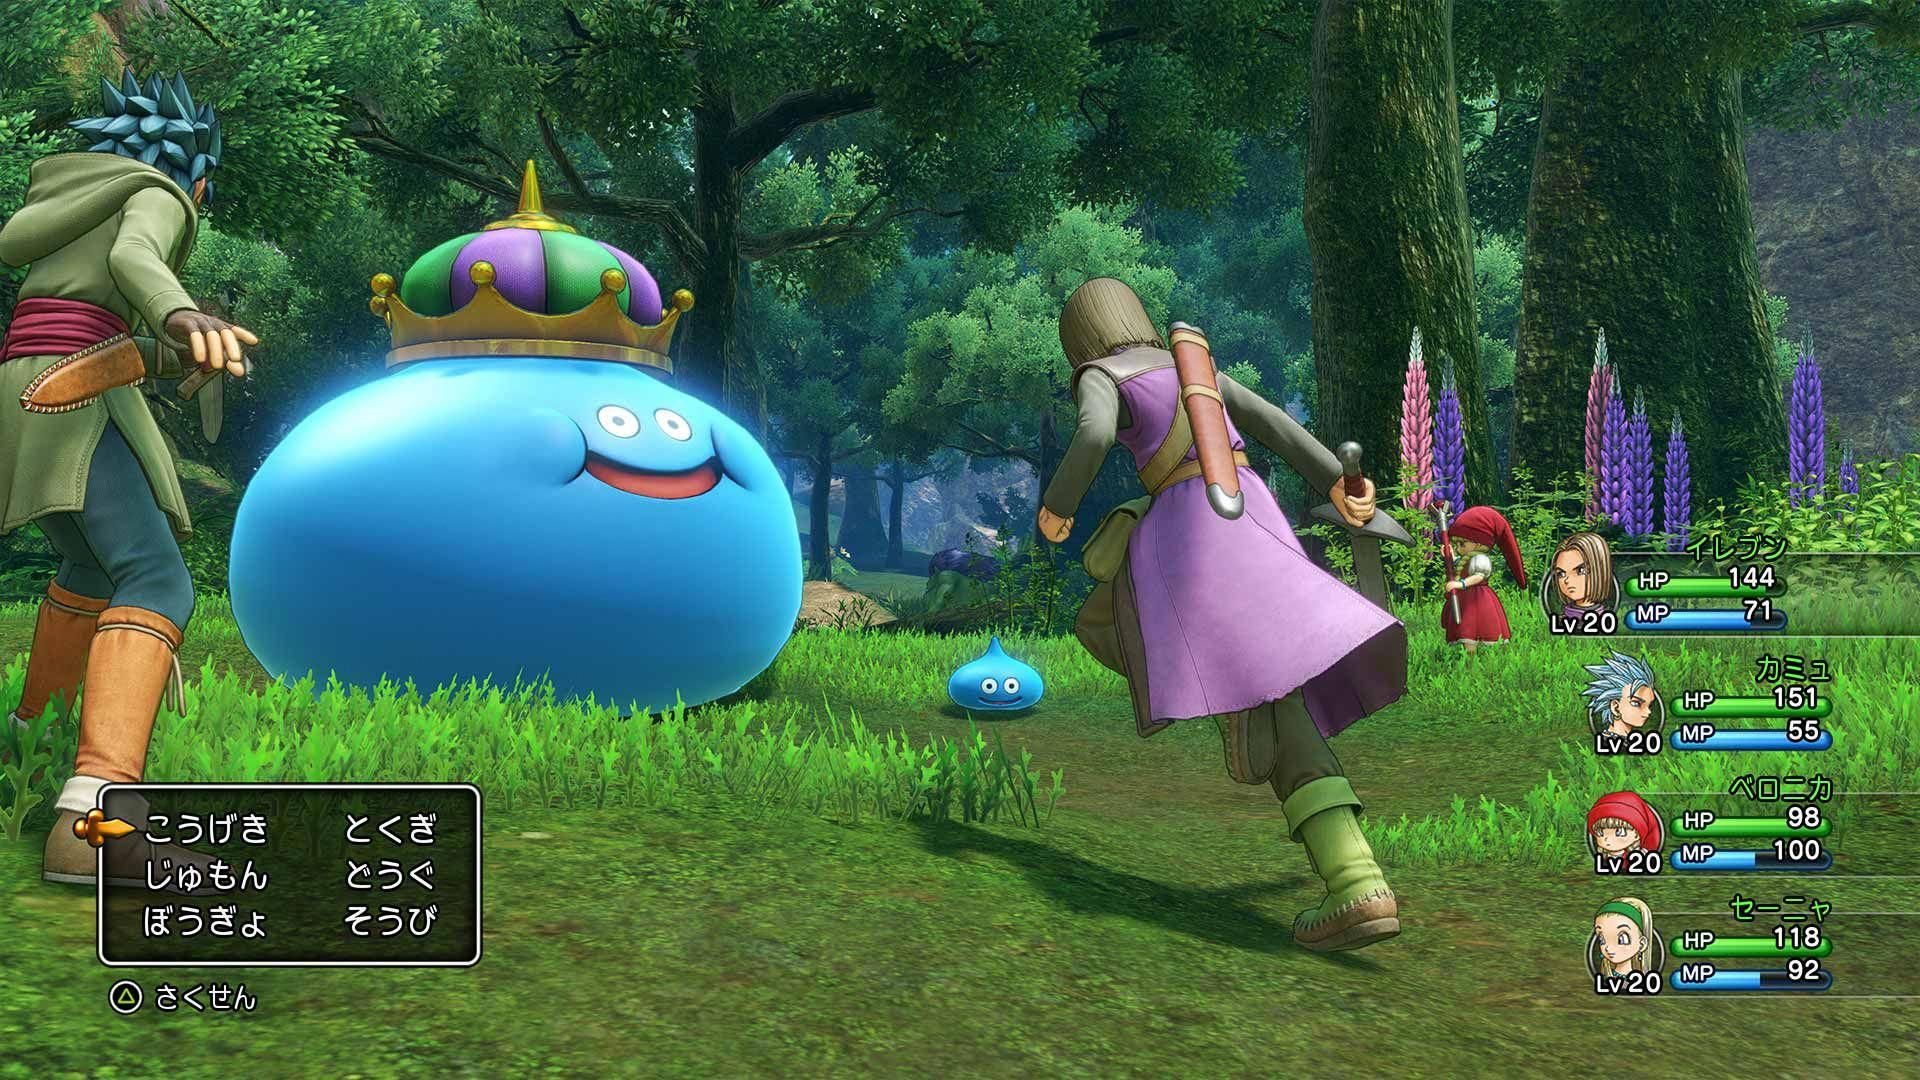 Dragon Quest Xi Gameplay And 1080p Screenshots Square Enix Claims It Will Be 50 100 Hours Long Starcitizen890jump Dragon Quest Dragon Things To Sell